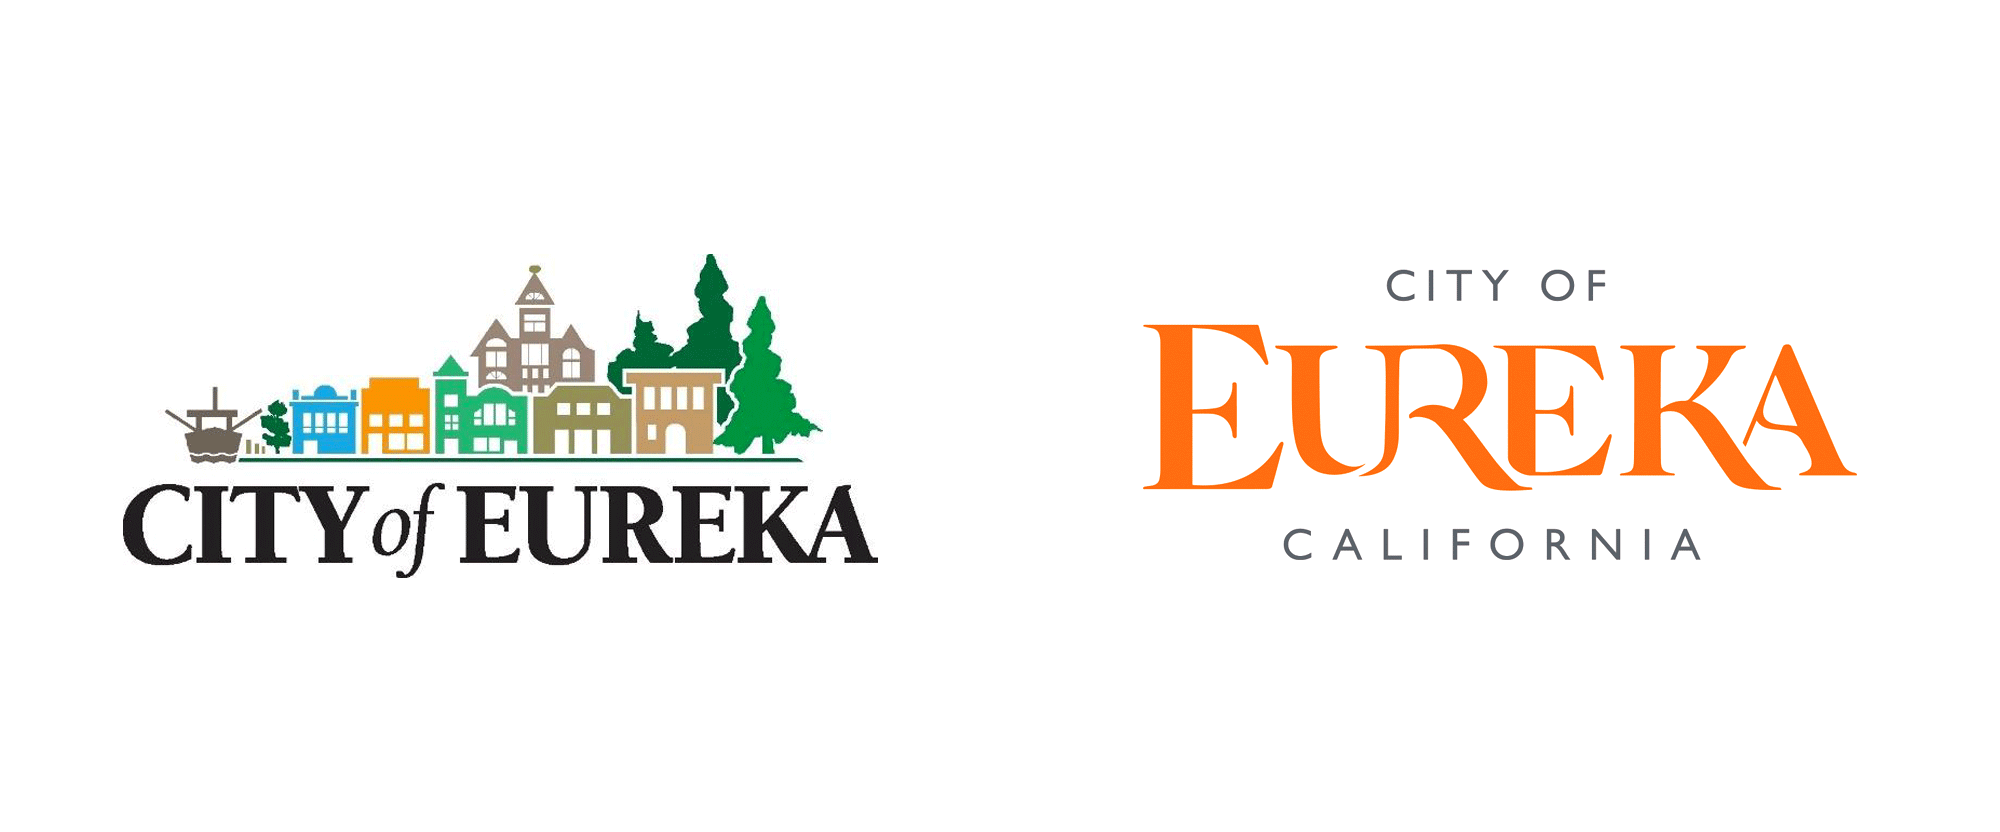 New Logo and Identity for City of Eureka by Eddy Alexander